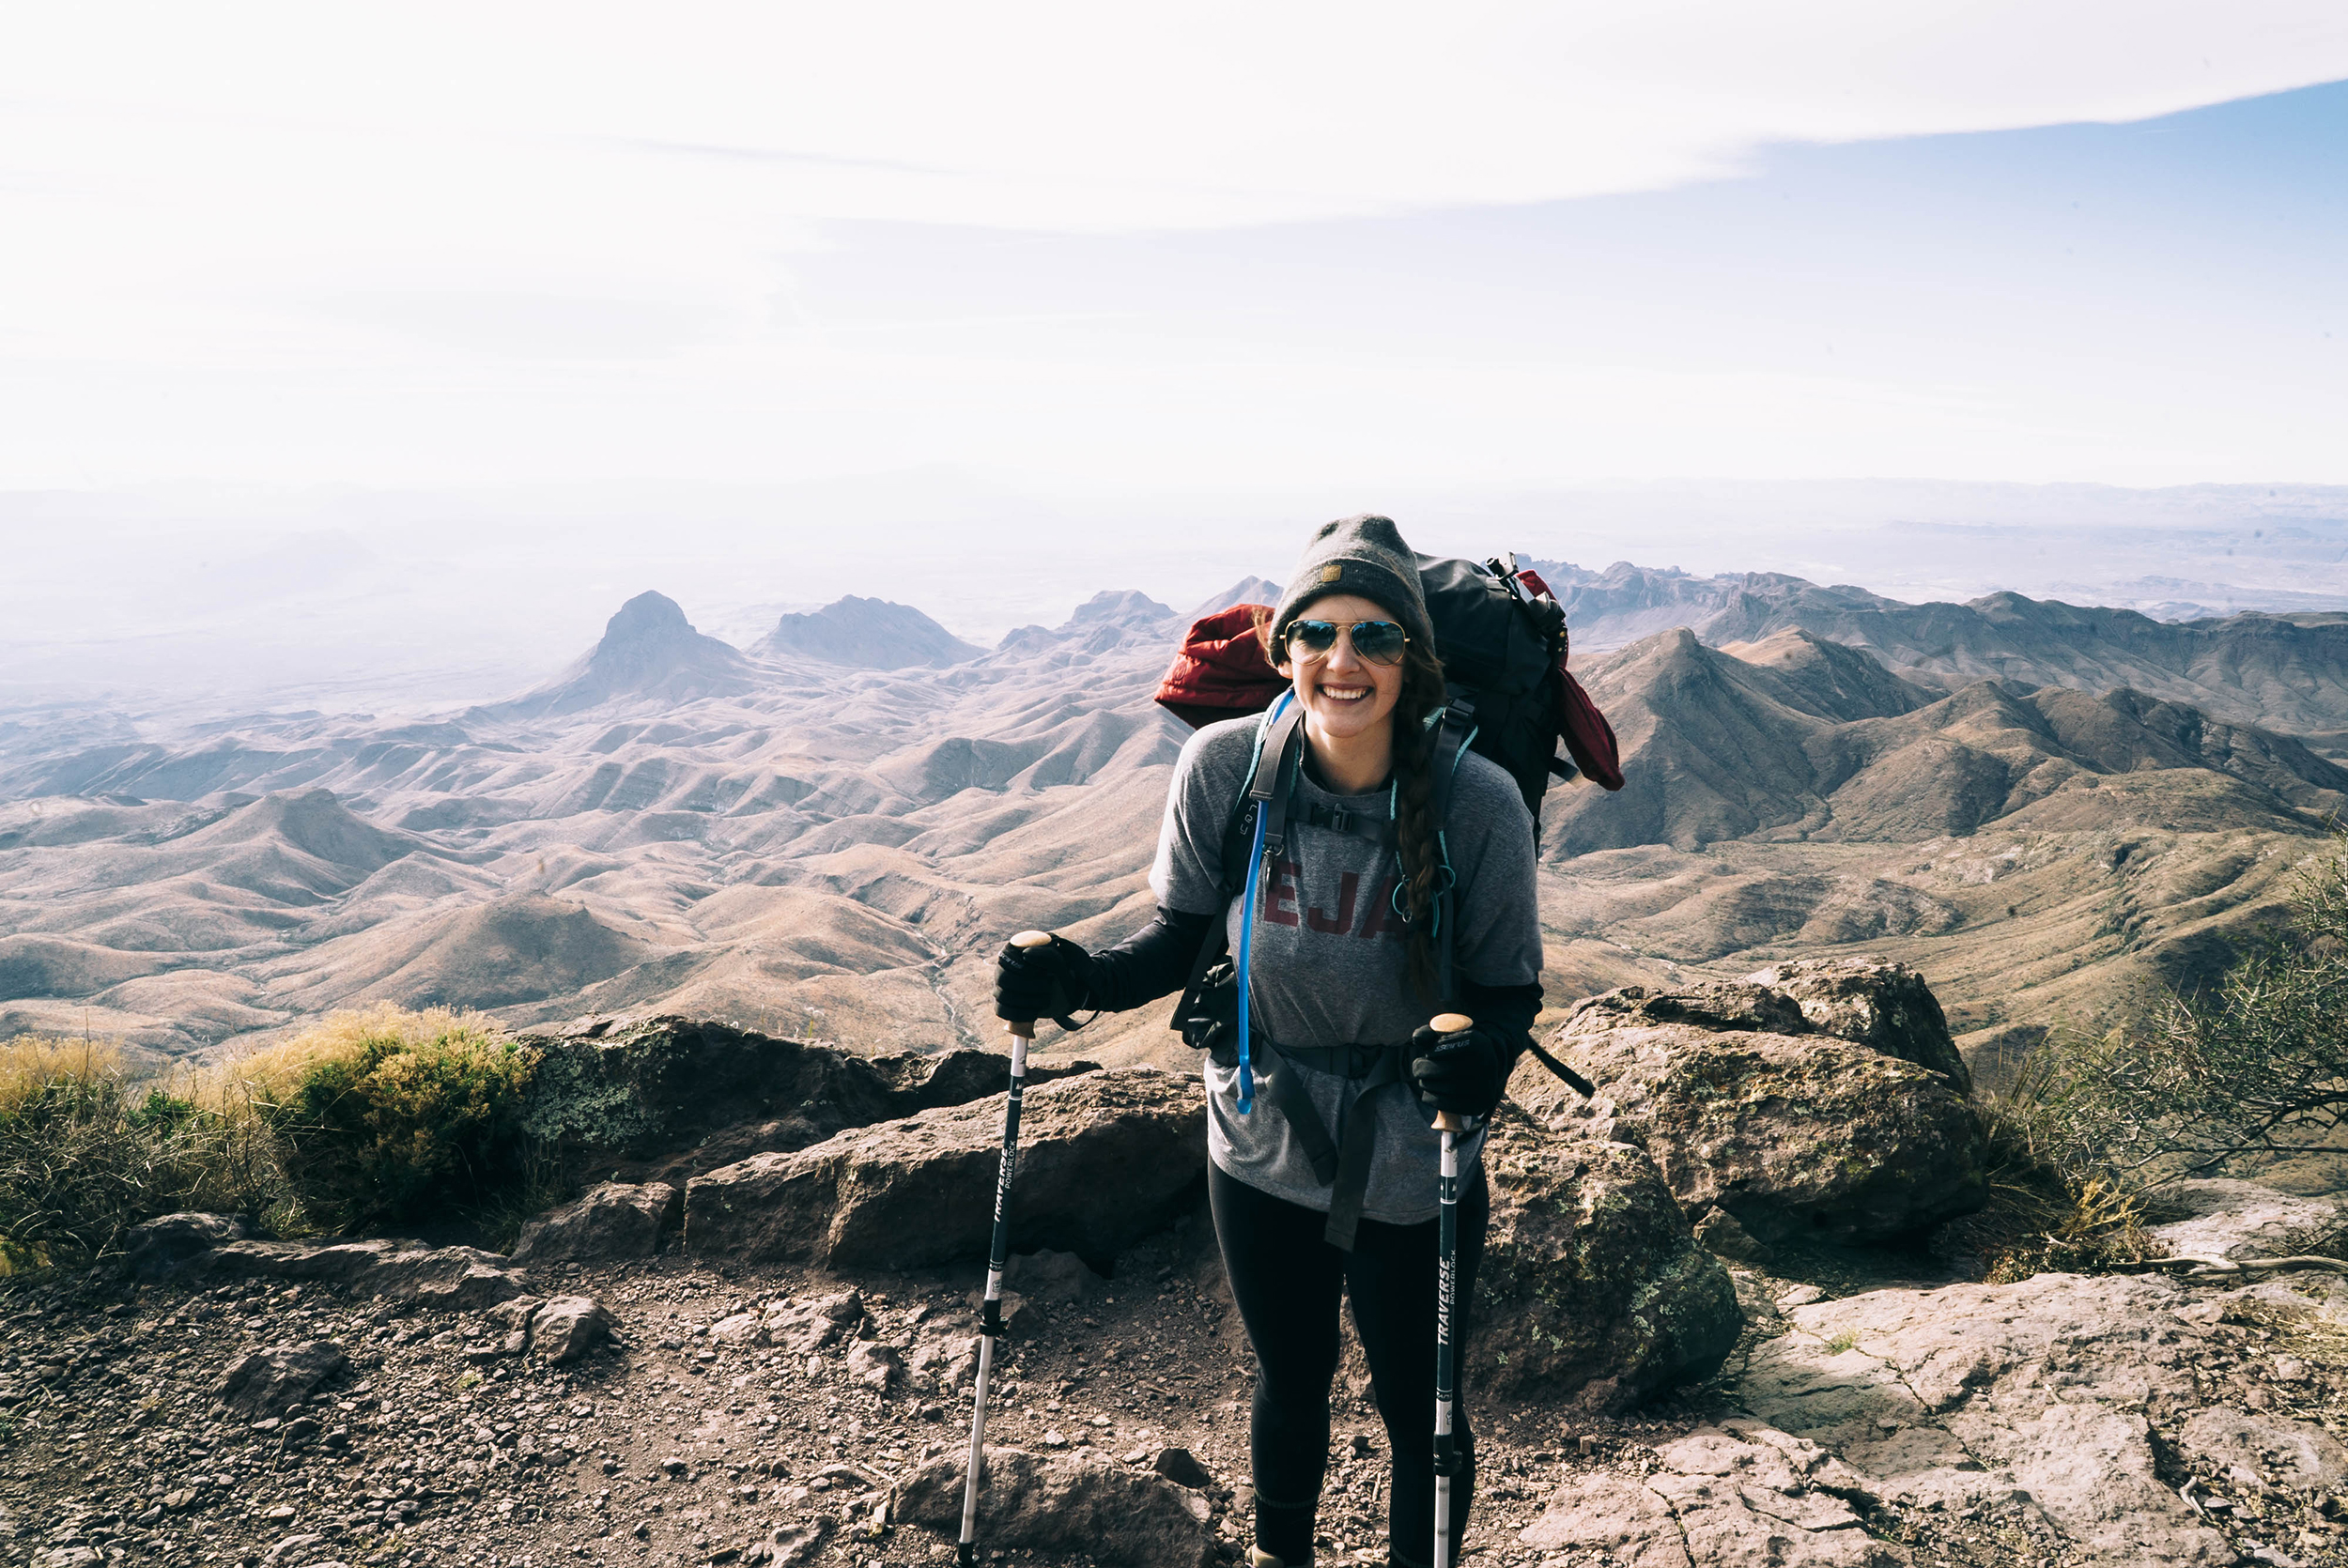 backpacking-training-hiit-workout